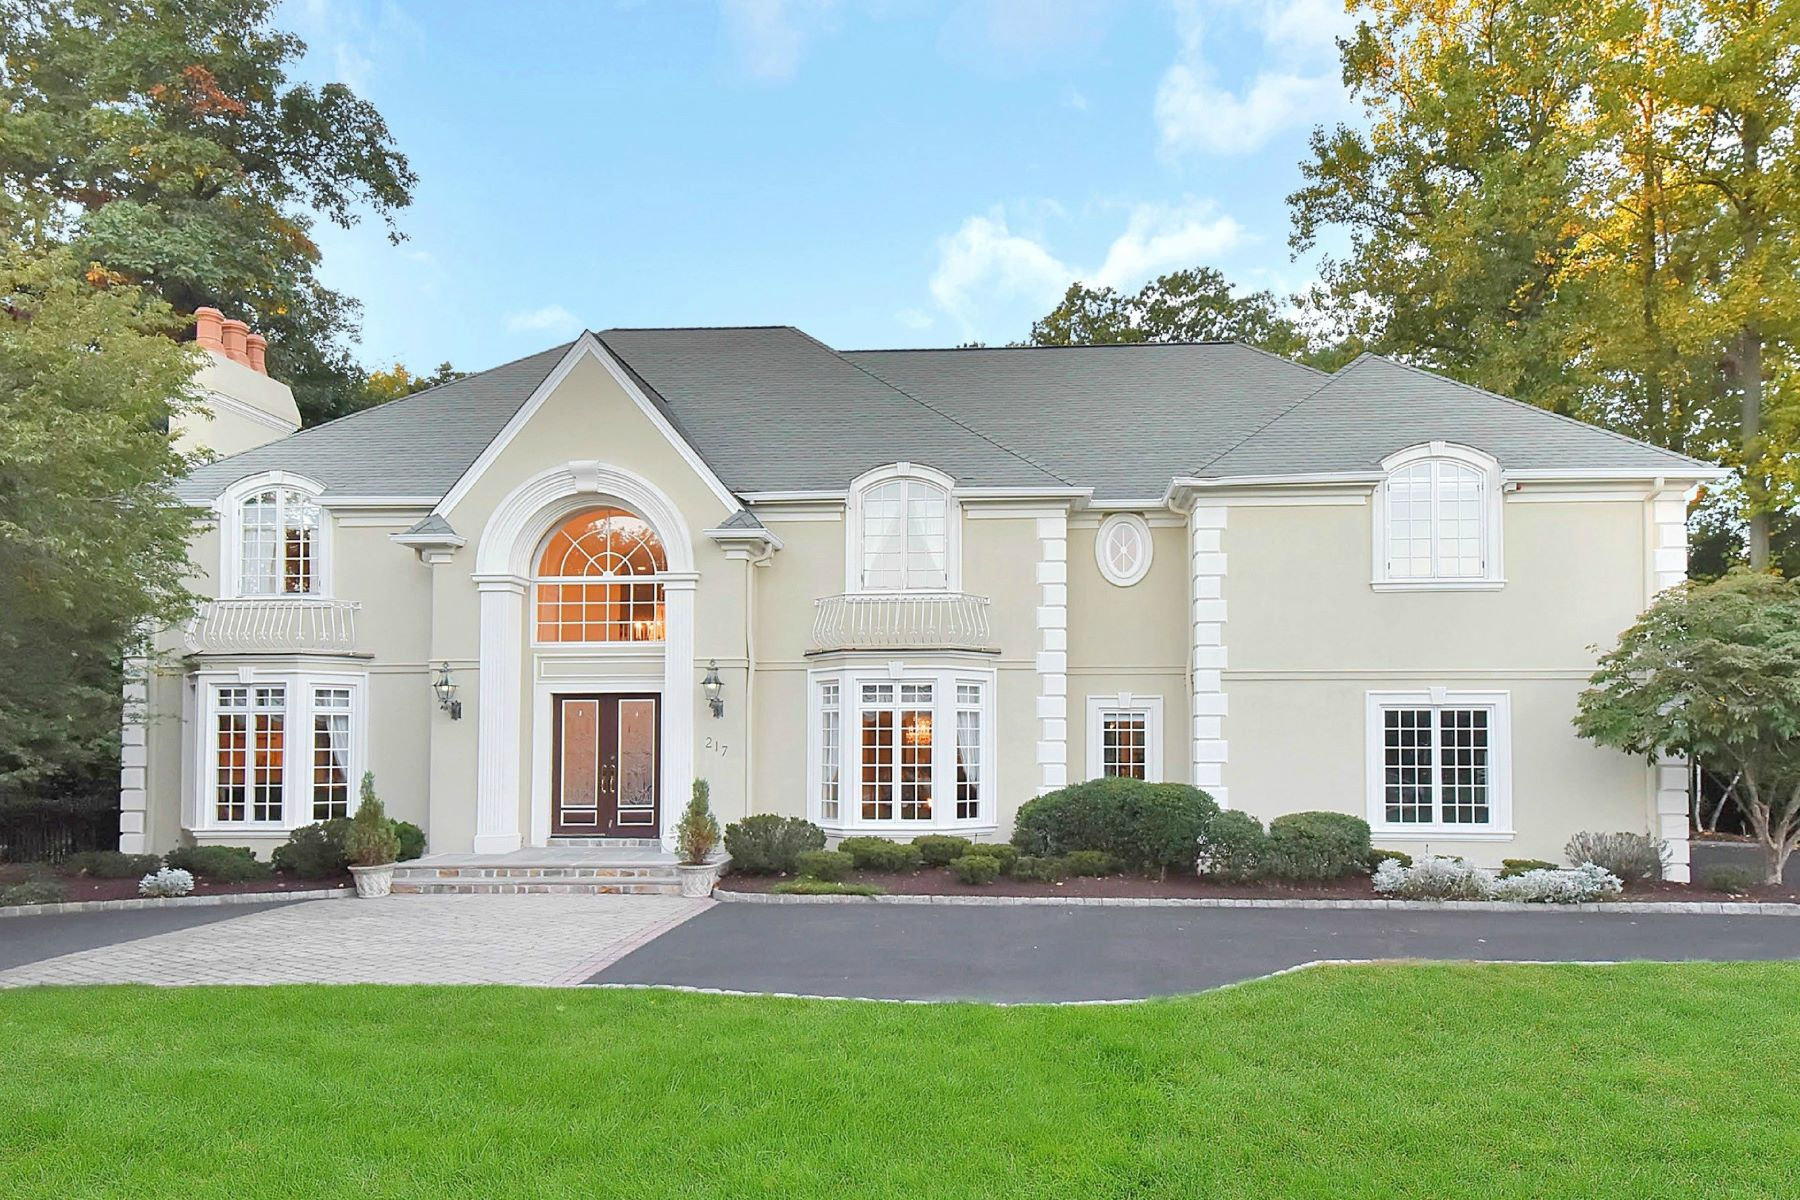 Single Family Home for Sale at Exquisite Colonial on Premier Cul De Sac 217 Stokes Farm Road, Franklin Lakes, New Jersey, 07417 United States